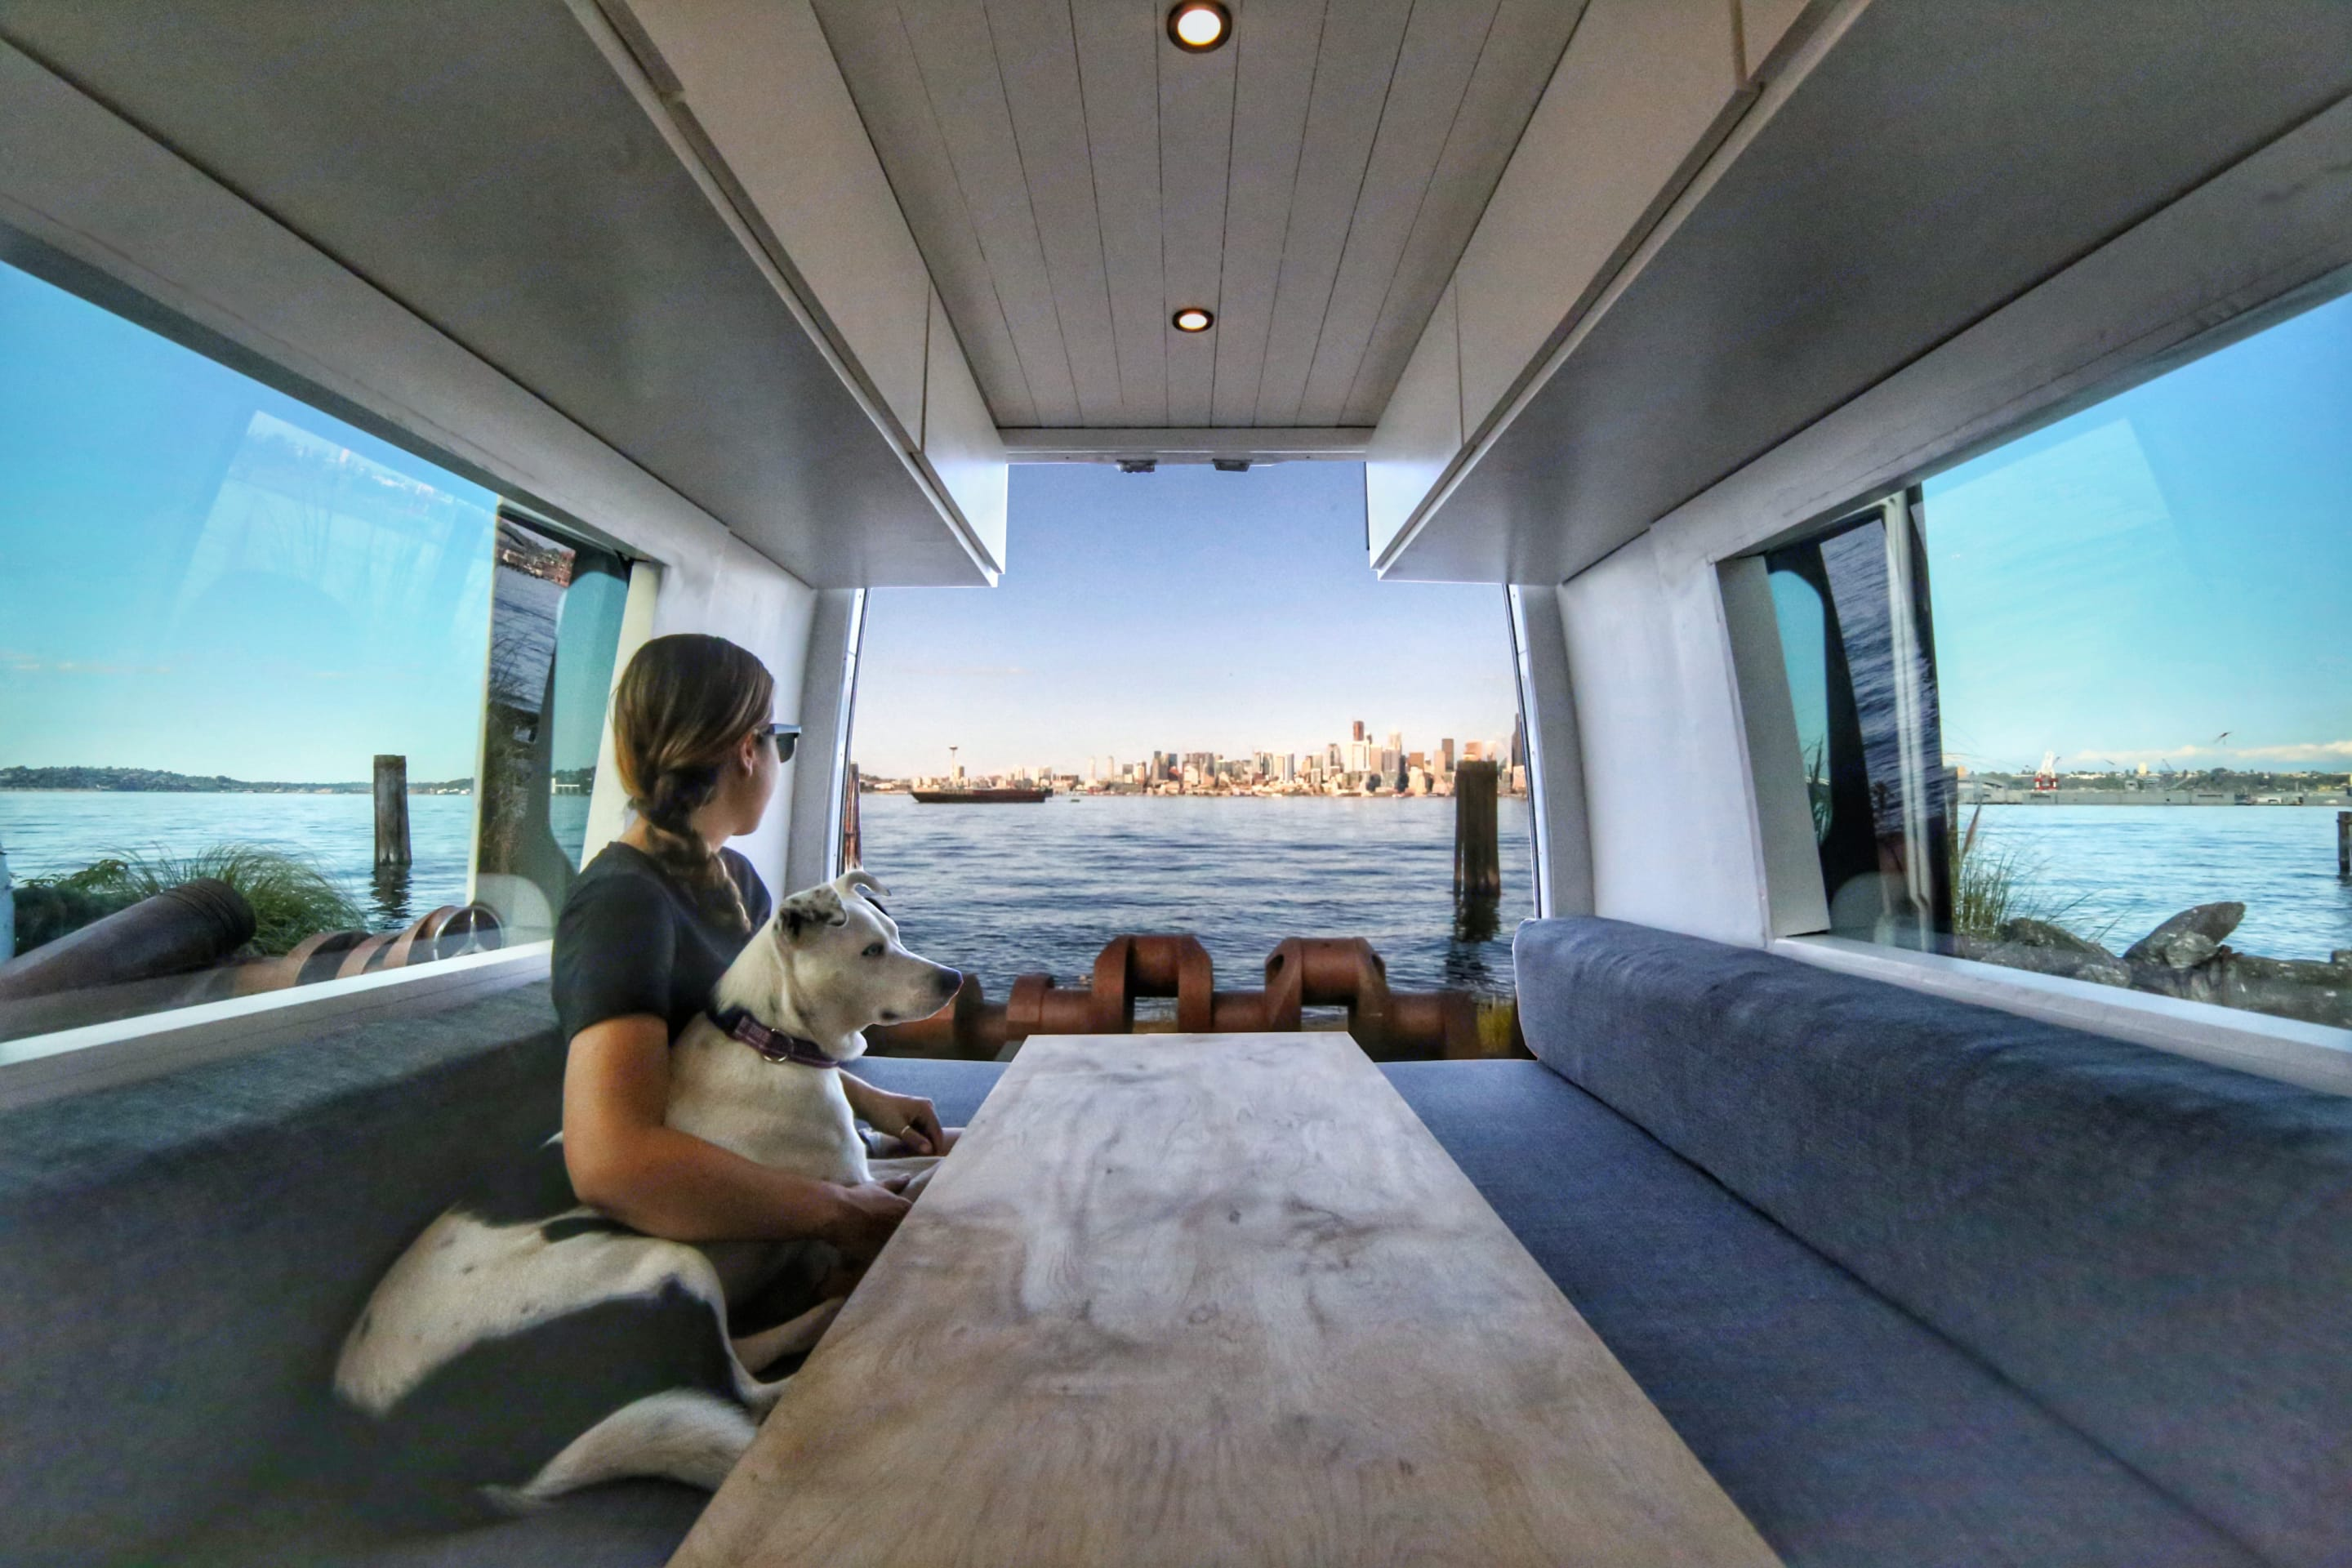 The perfect van for relaxing or working while taking in the surrounding views!. Mercedes-Benz Sprinter 2011